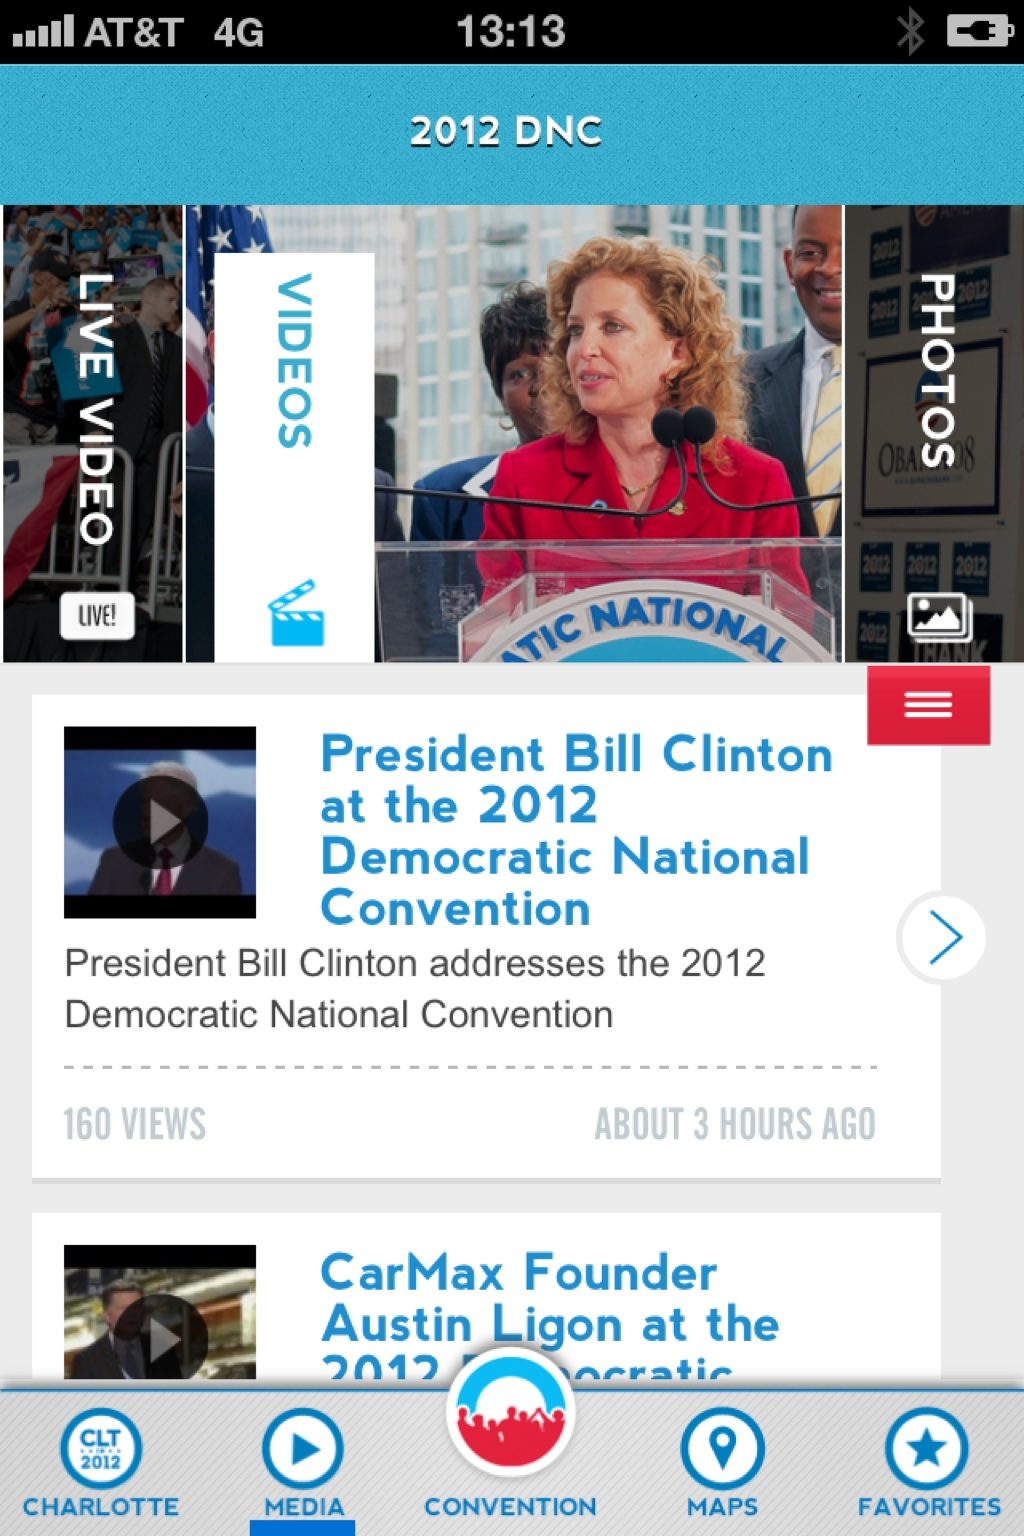 Missed Bill Clinton's speech at #dnc2012? You can get it in the DNC 2012 apps for iPhone & Android – View on Path.